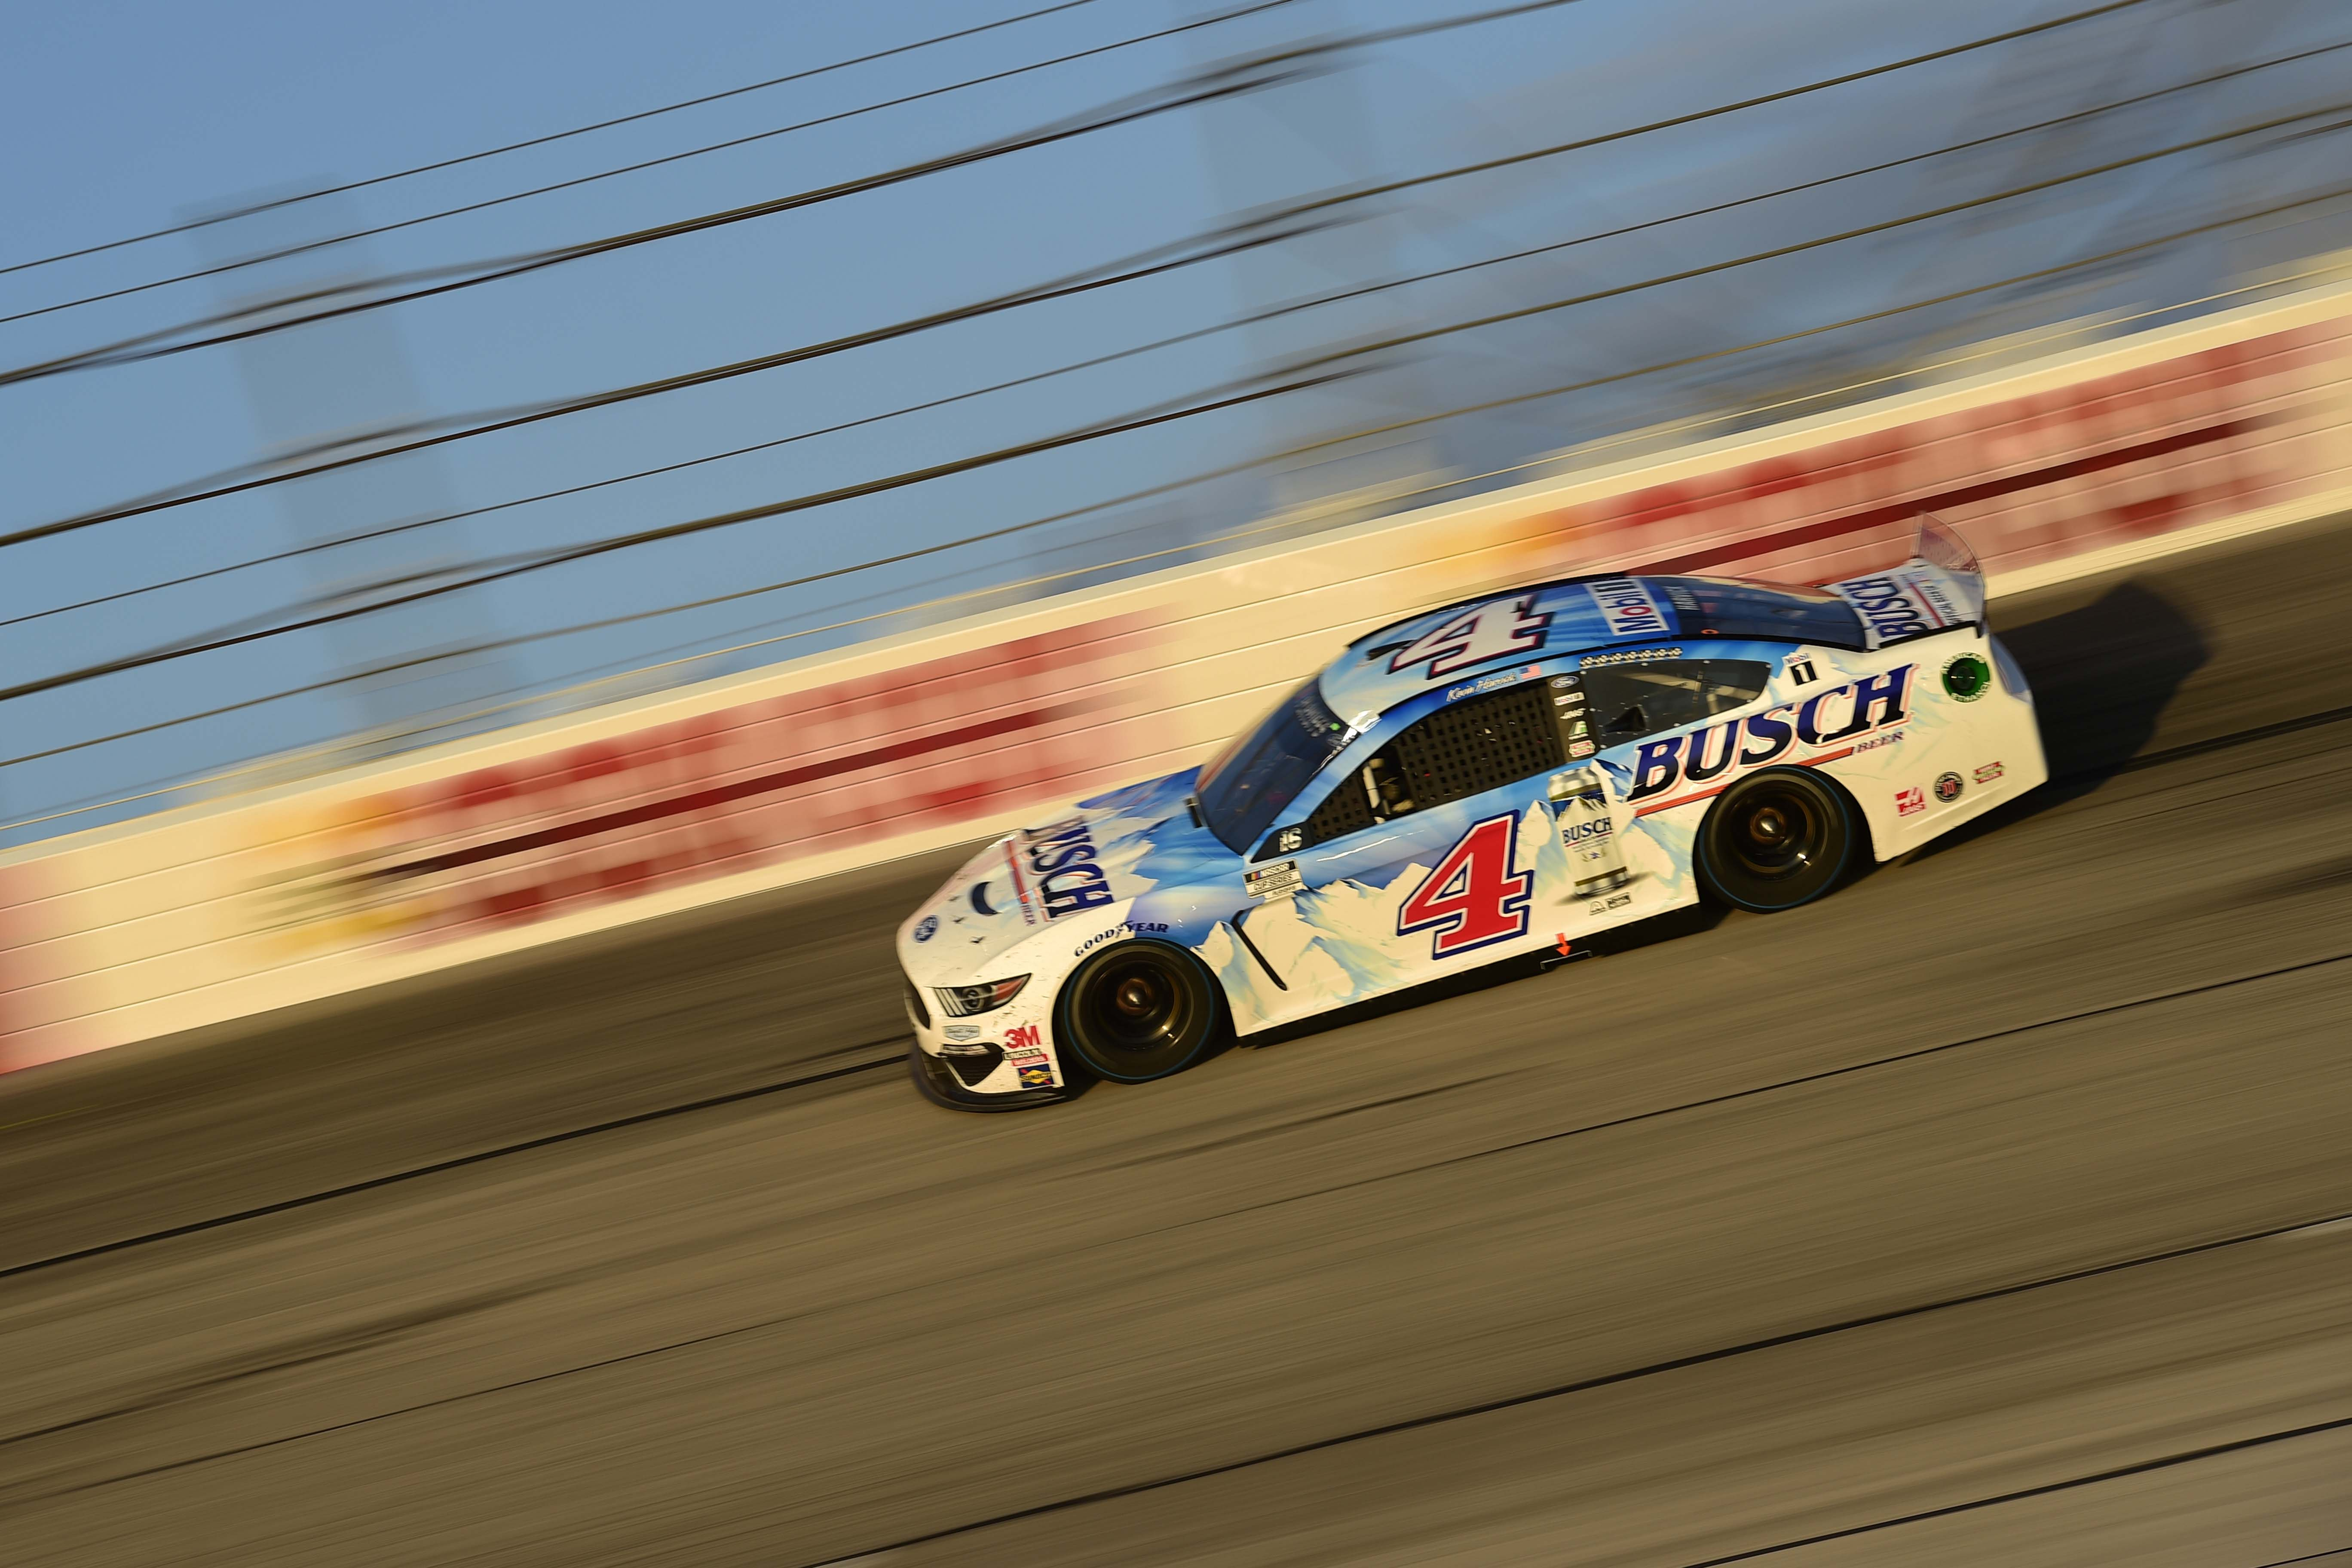 Kevin Harvick in the Busch throwback at Darlington Raceway - NASCAR Cup Series